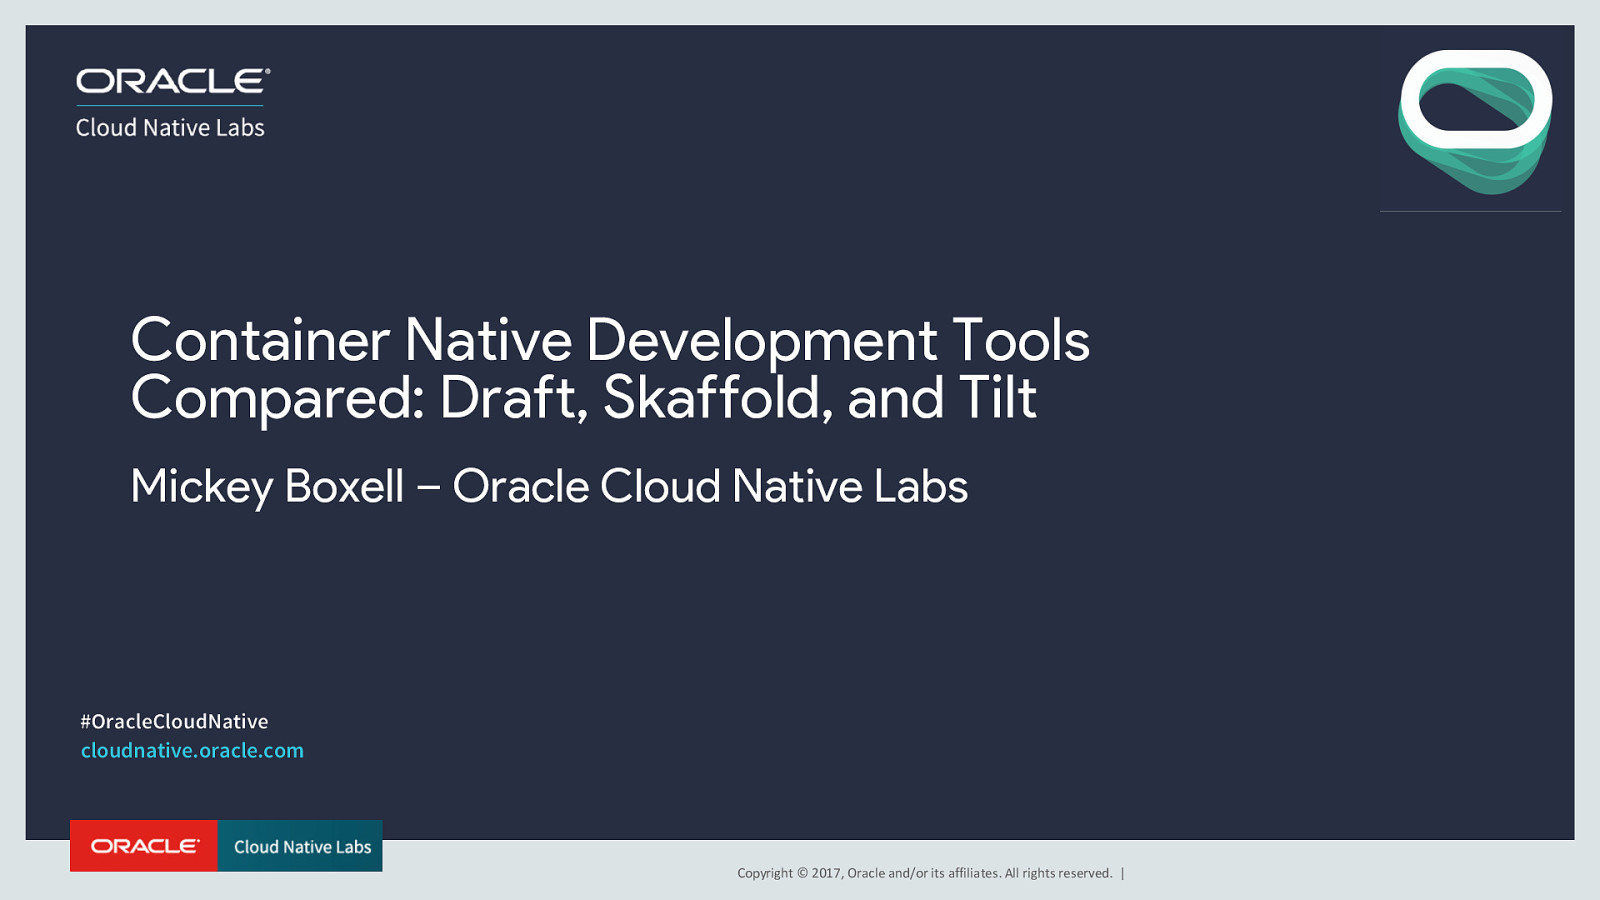 Container Native Development Tools